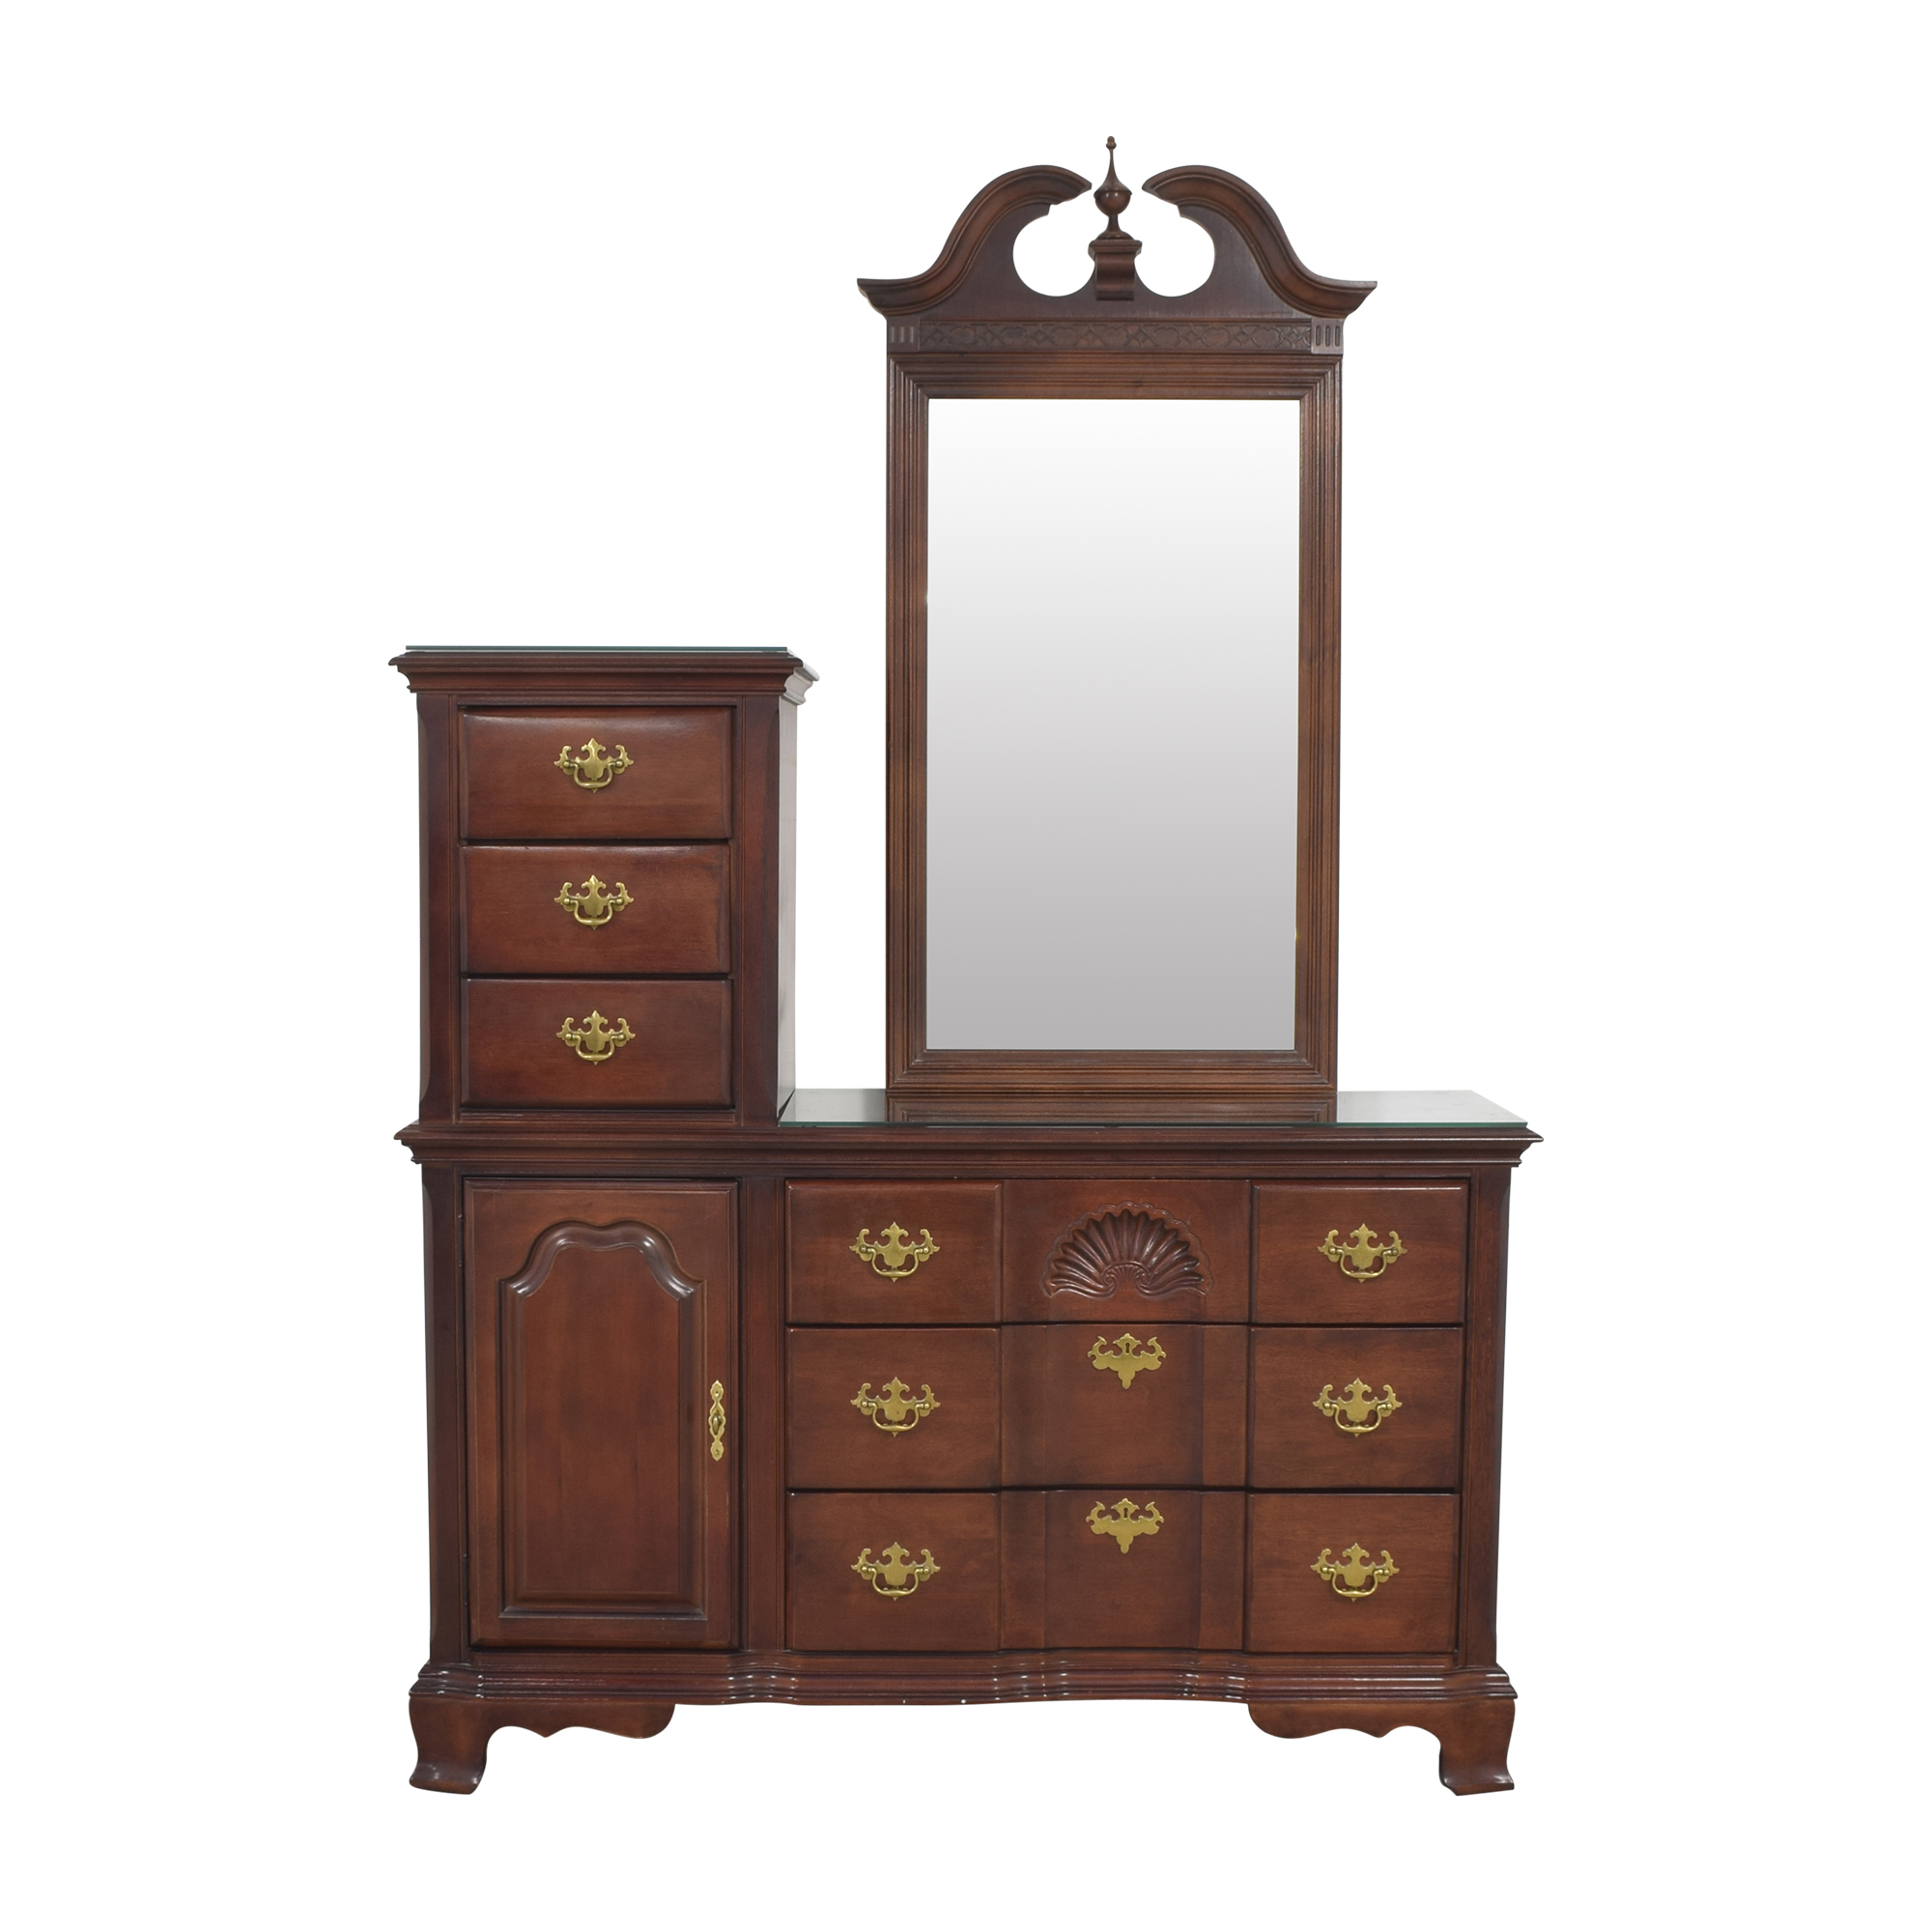 shop Universal Furniture Universal Furniture Door Dresser with Mirror online